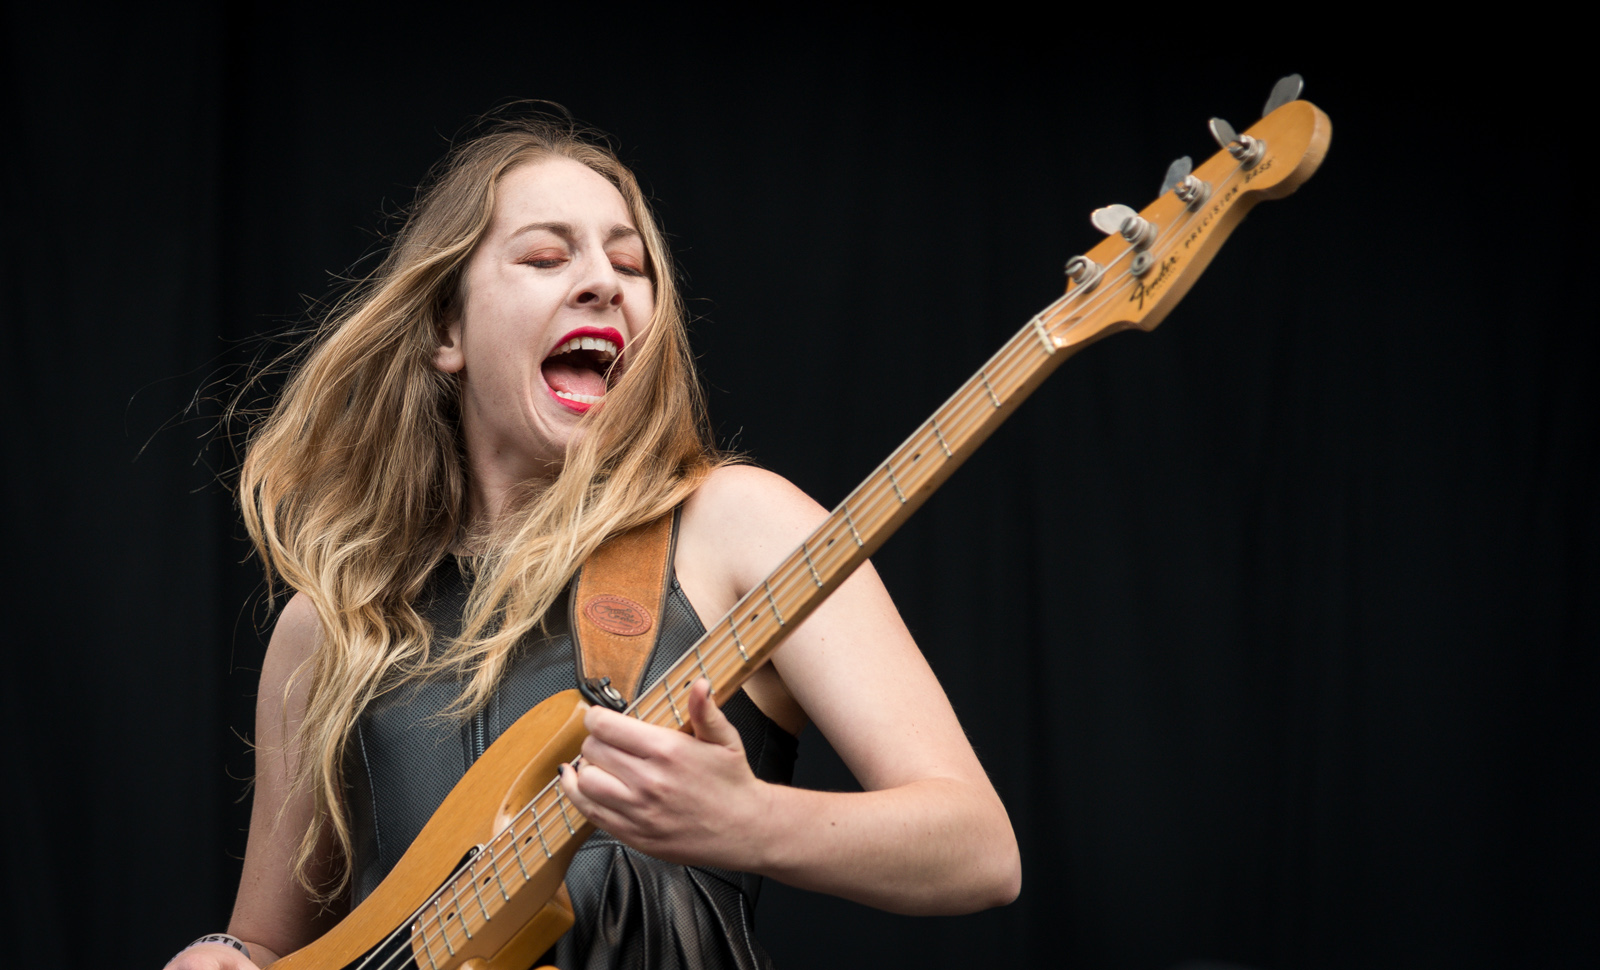 http://upload.wikimedia.org/wikipedia/commons/8/8e/Haim_at_%C3%98yafestivalen_2013.jpg